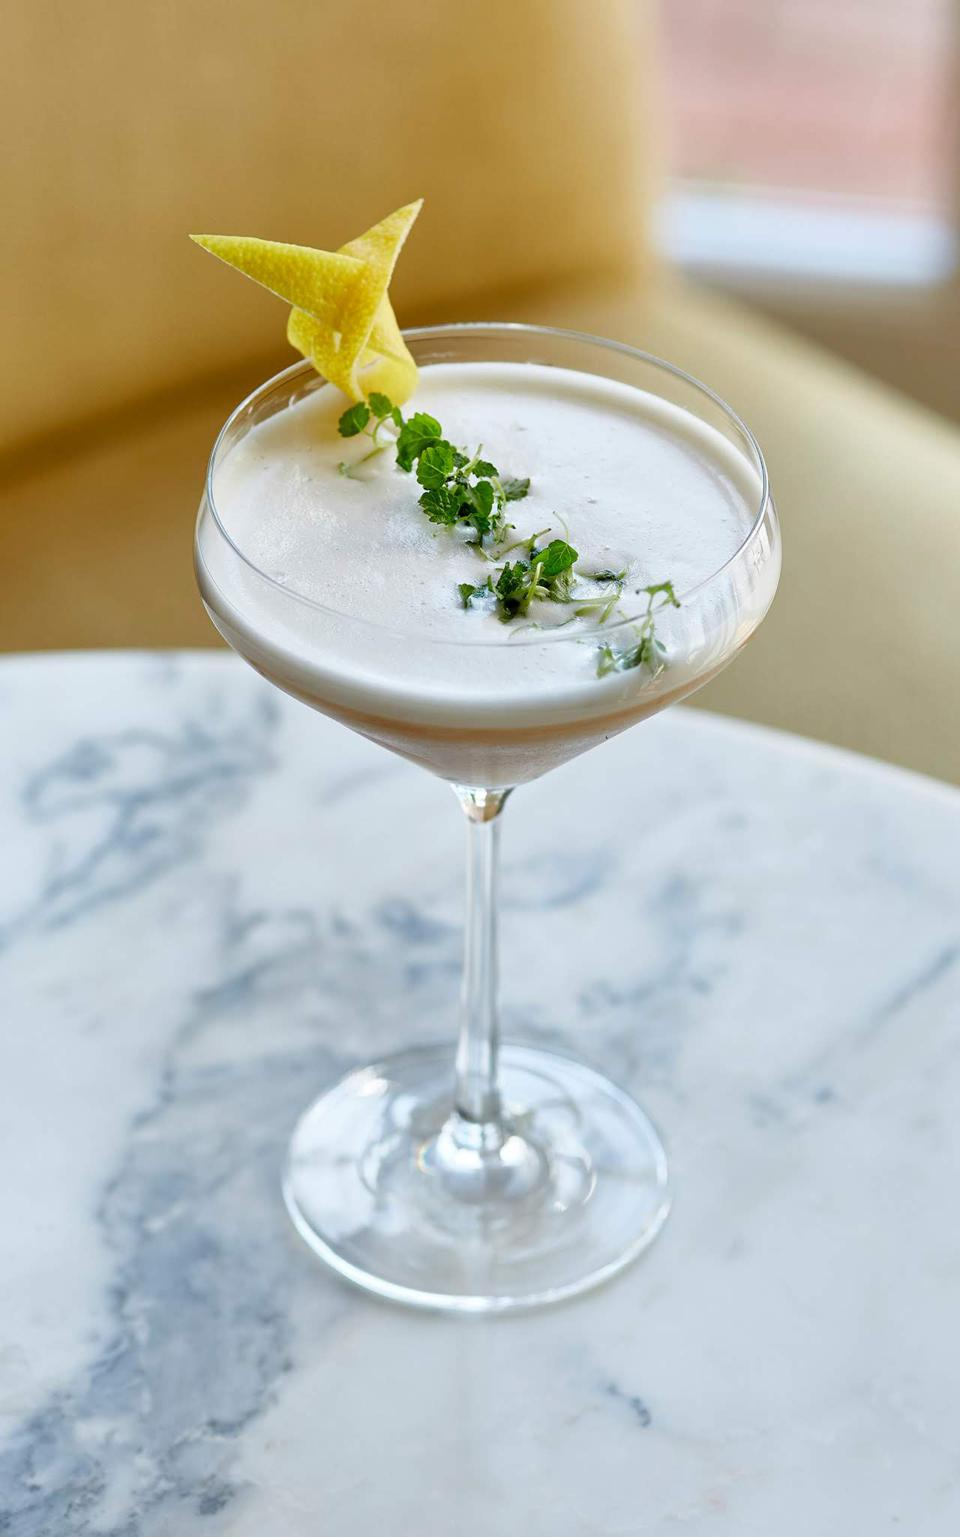 The Wild Carrot Cocktail at Four Seasons Hotel Hampshire.